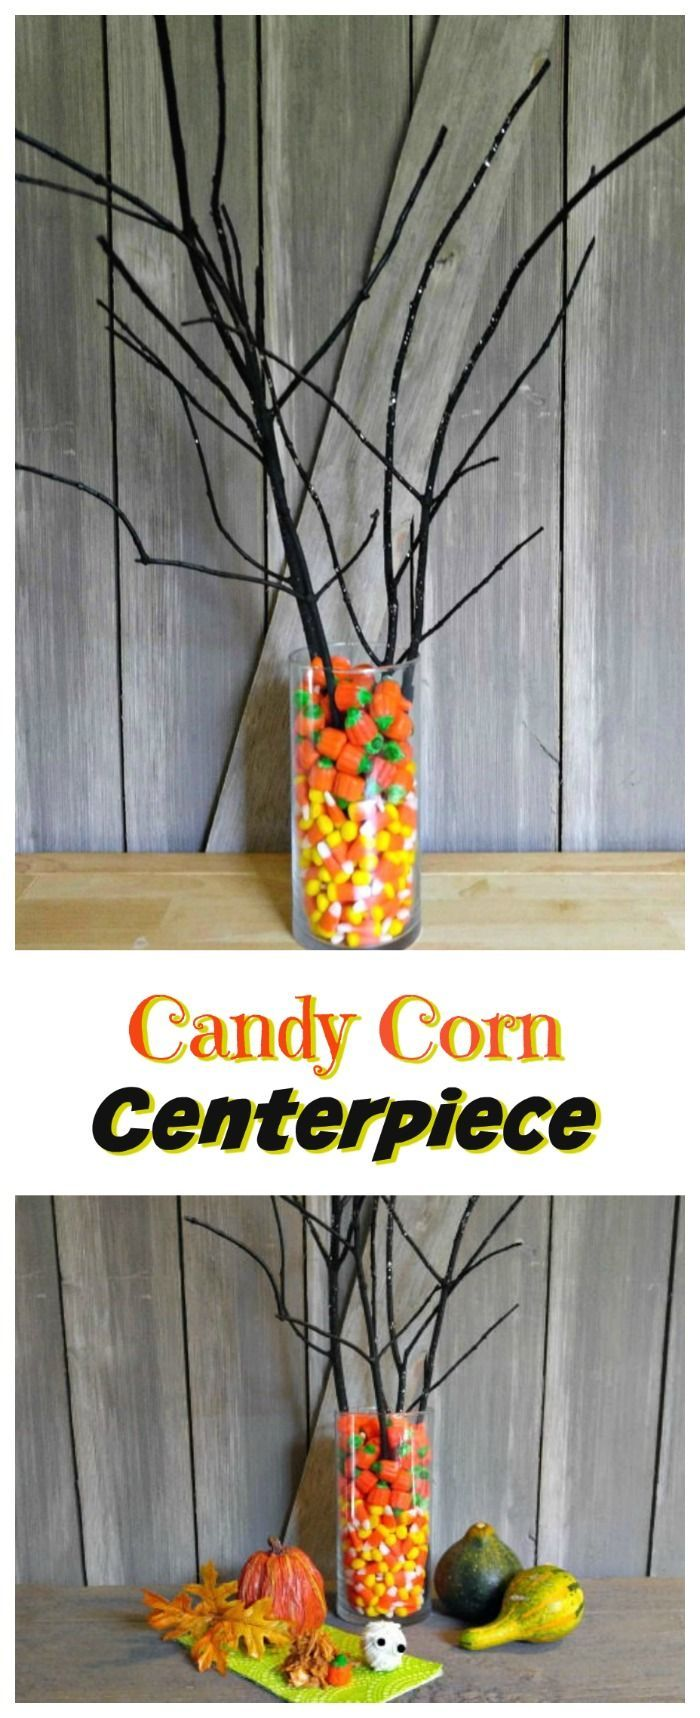 This candy corn centerpiece is simple to do and looks great on your Halloween party table #centerpiece #Halloween